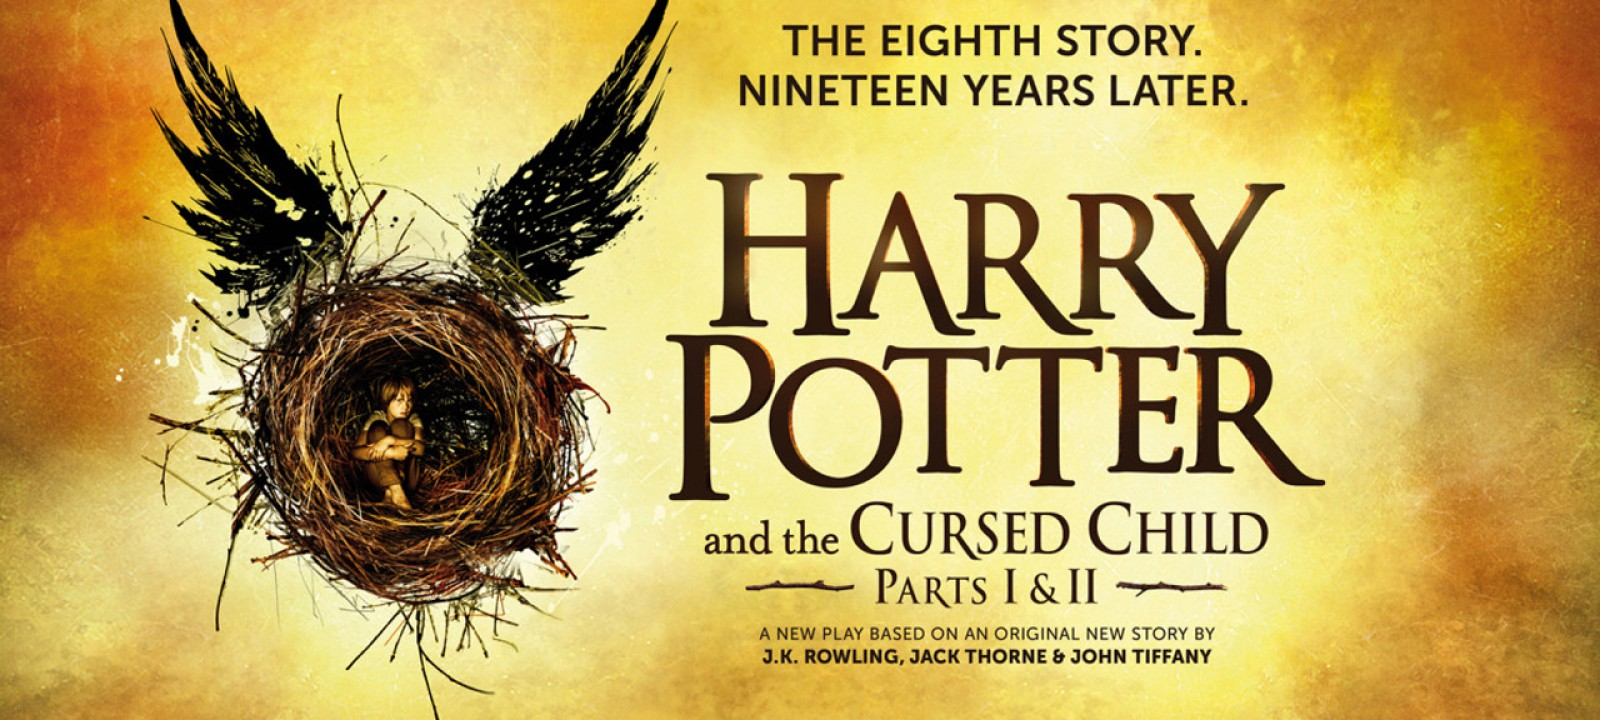 Harry Potter and the Cursed Child poster (Photo: Pottermore)